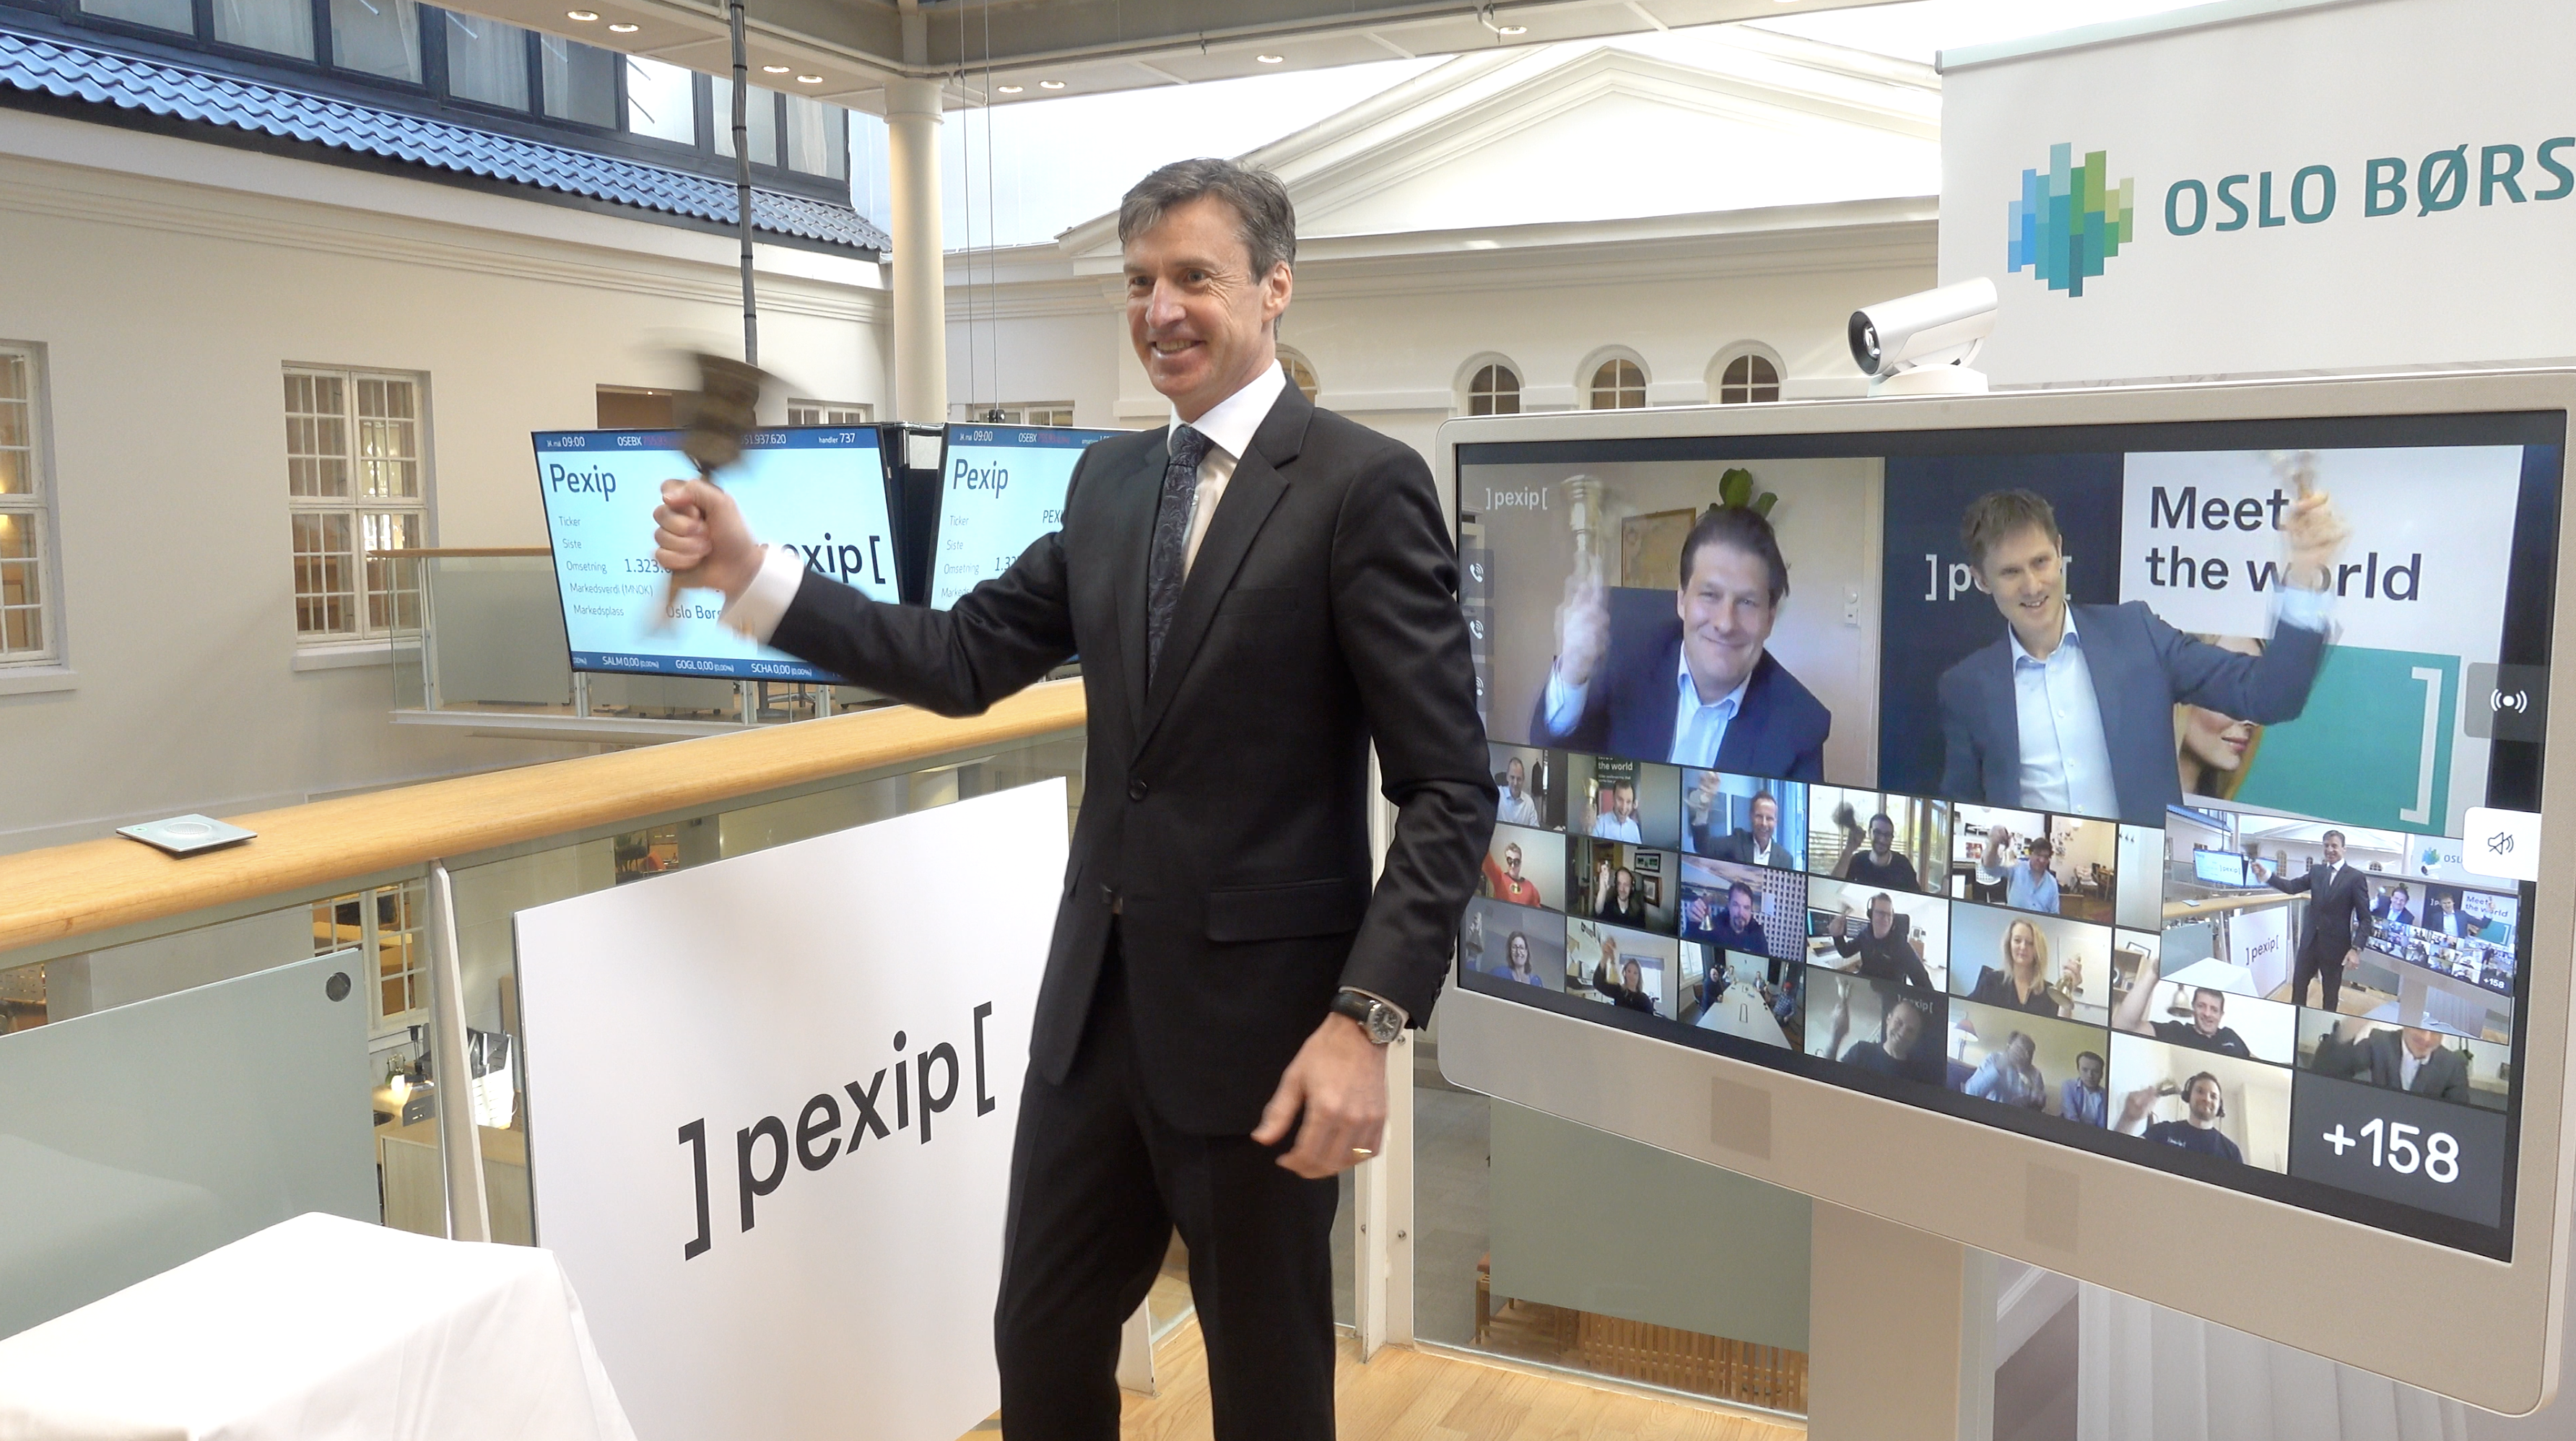 Pexip Listed on the Oslo Stock Exchange after the First Fully-Virtual IPO in Norway